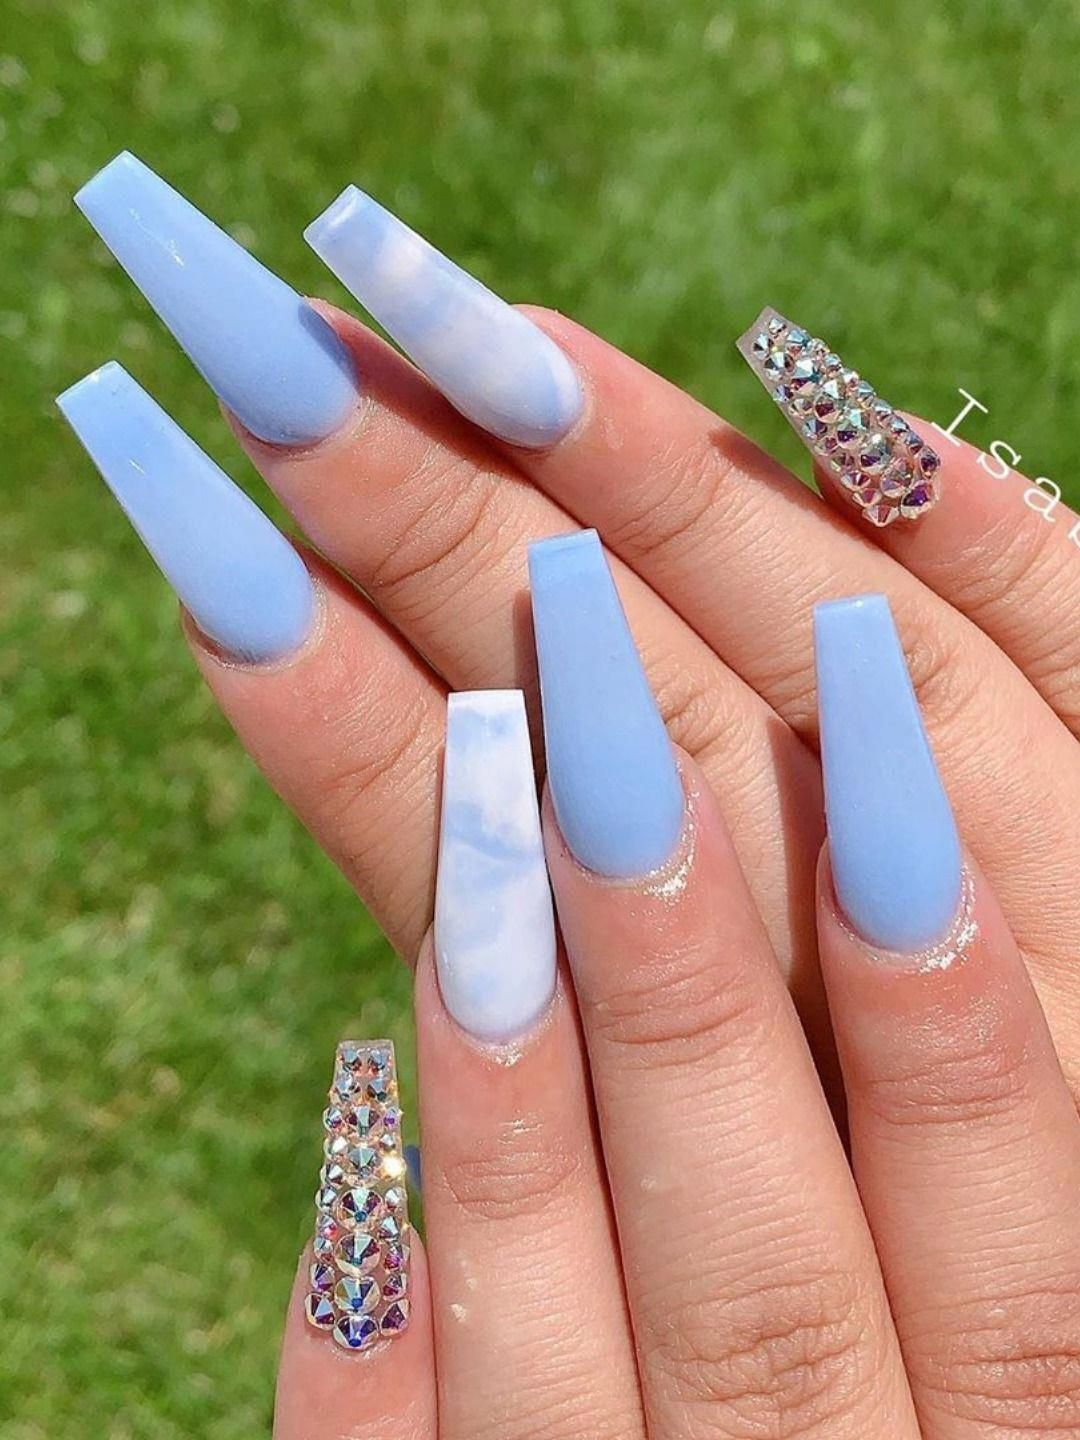 Beautiful Nails Set Consists Of Light Blue Coffin Nails Blue White Marble Coffin Nail And Crys In 2020 Blue Acrylic Nails Baby Blue Acrylic Nails Blue Coffin Nails